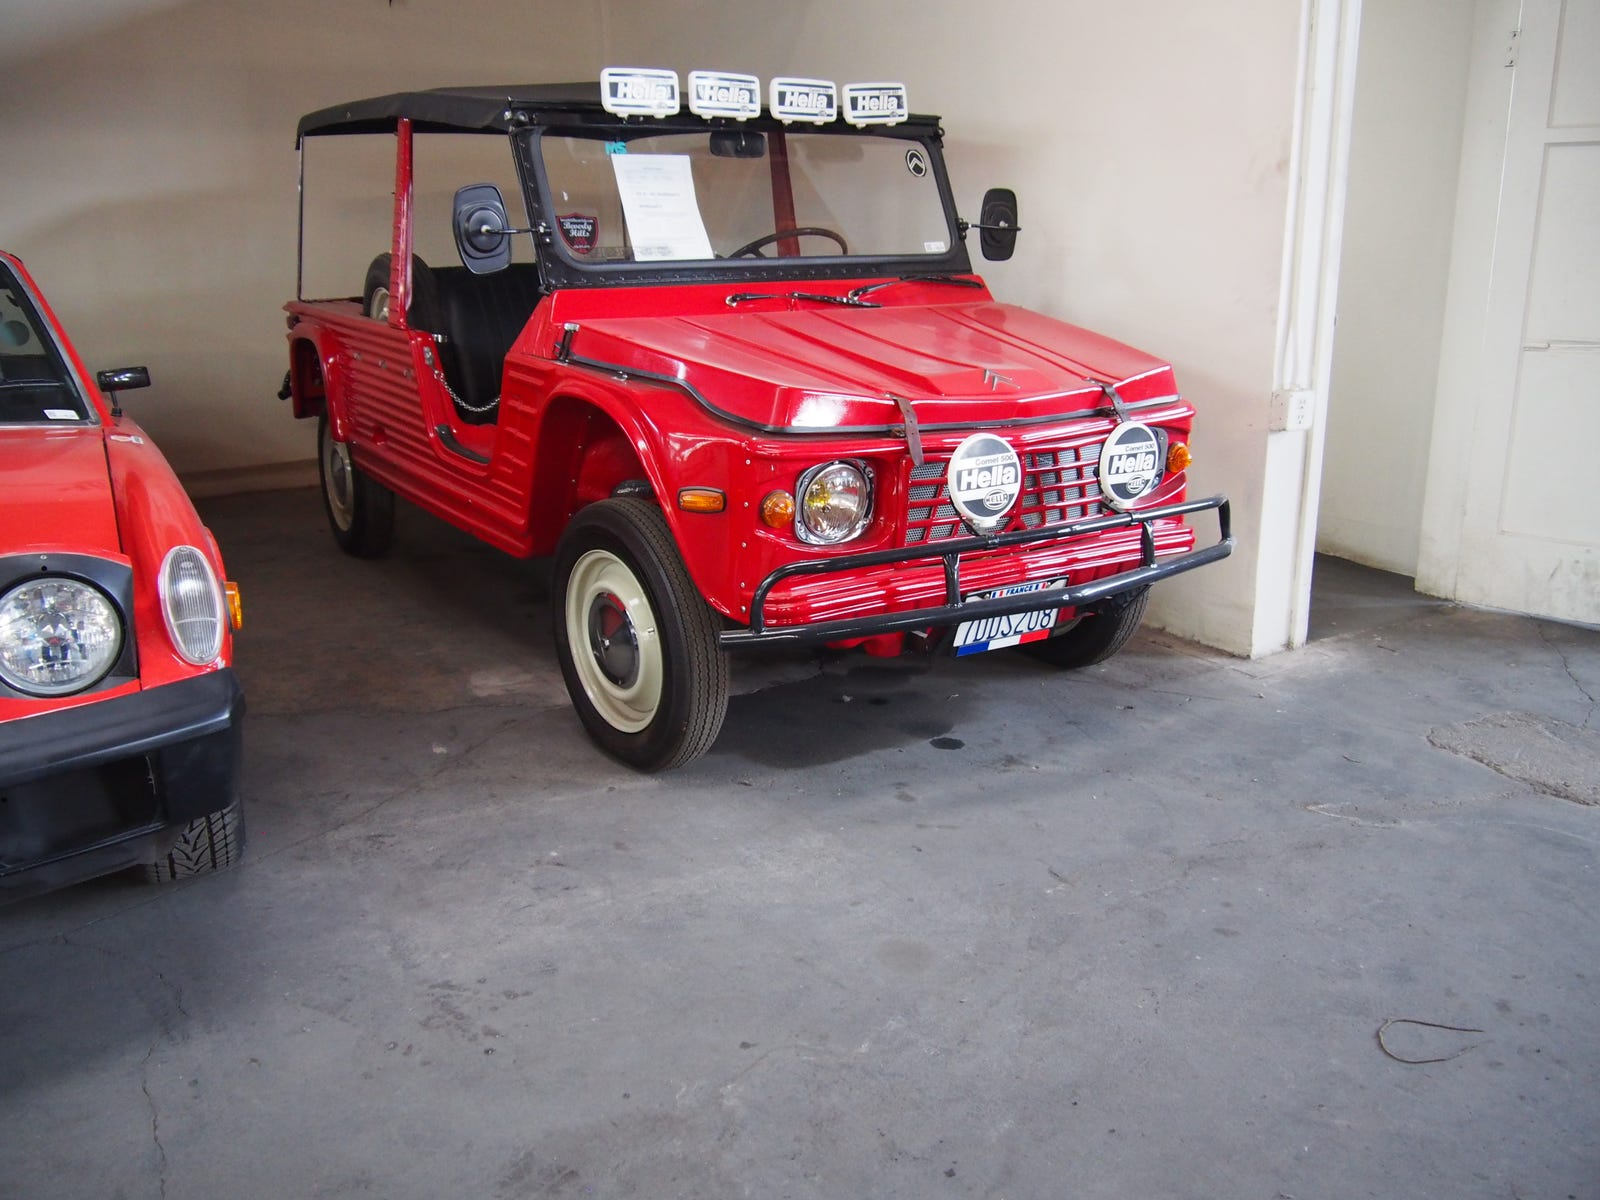 Same for this nice Citroën Mehari. Needs more rally lights, though. Gonzo drove one of these in The Muppet Movie.